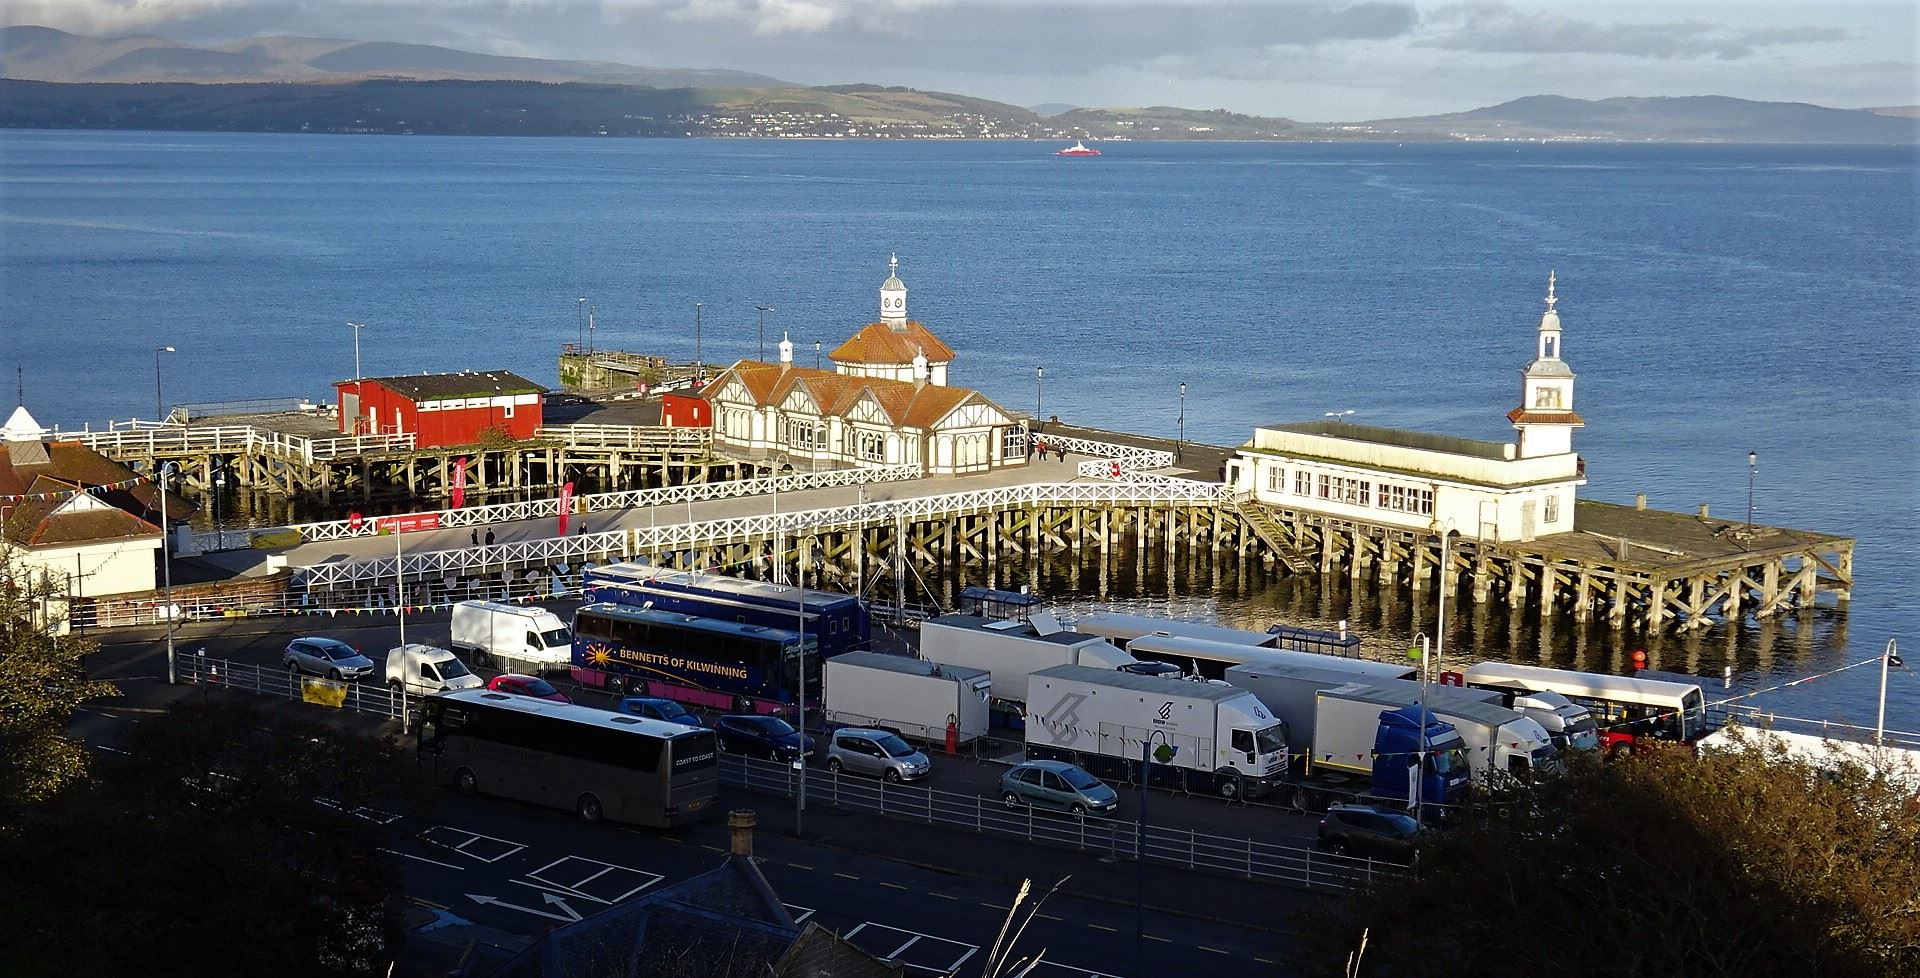 Hotels in Dunoon